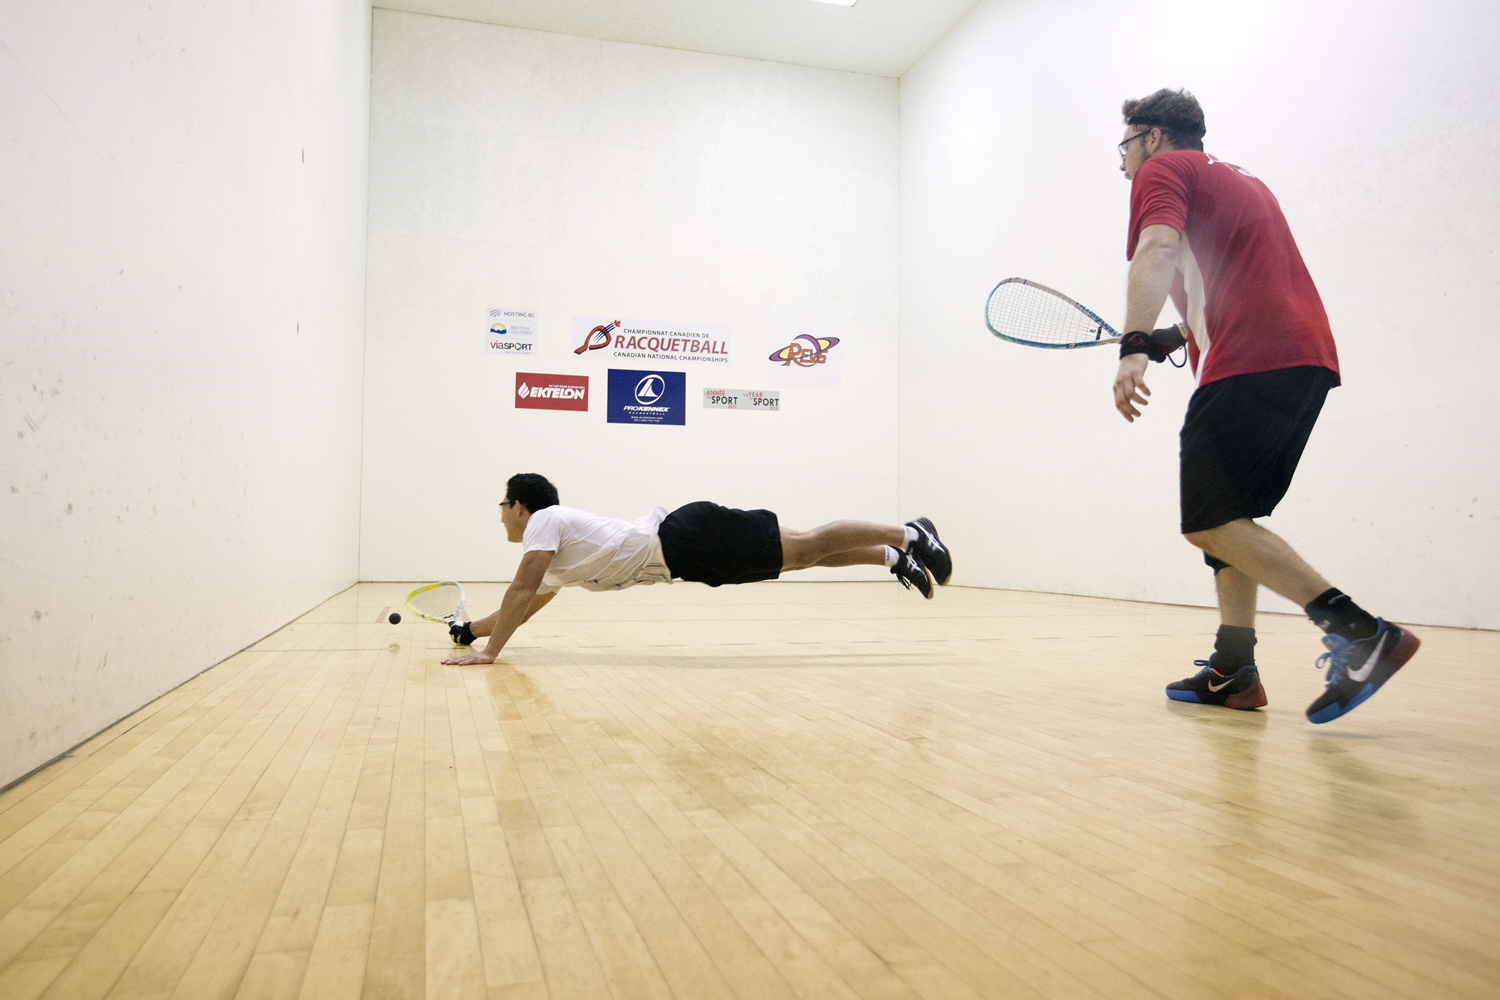 Coby Iwaasa (left) faced Samuel Murray (right) in a pulsating Men's Singles final. Photo credit: Jan Hanson